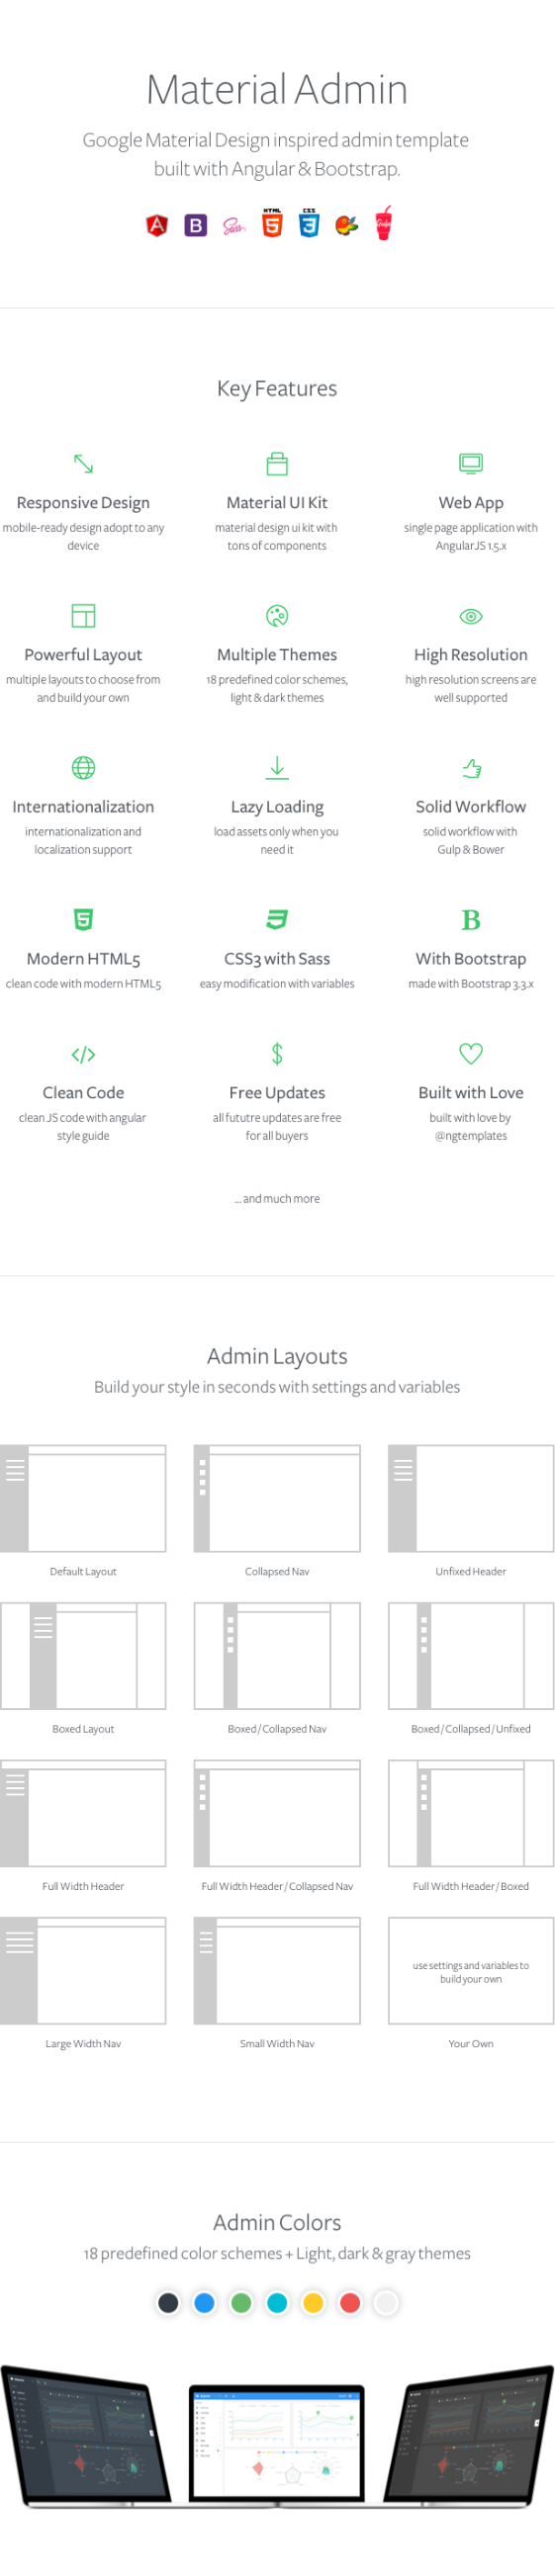 ngtemplates material preview - Material Design AngularJS Admin Web App with Bootstrap 4